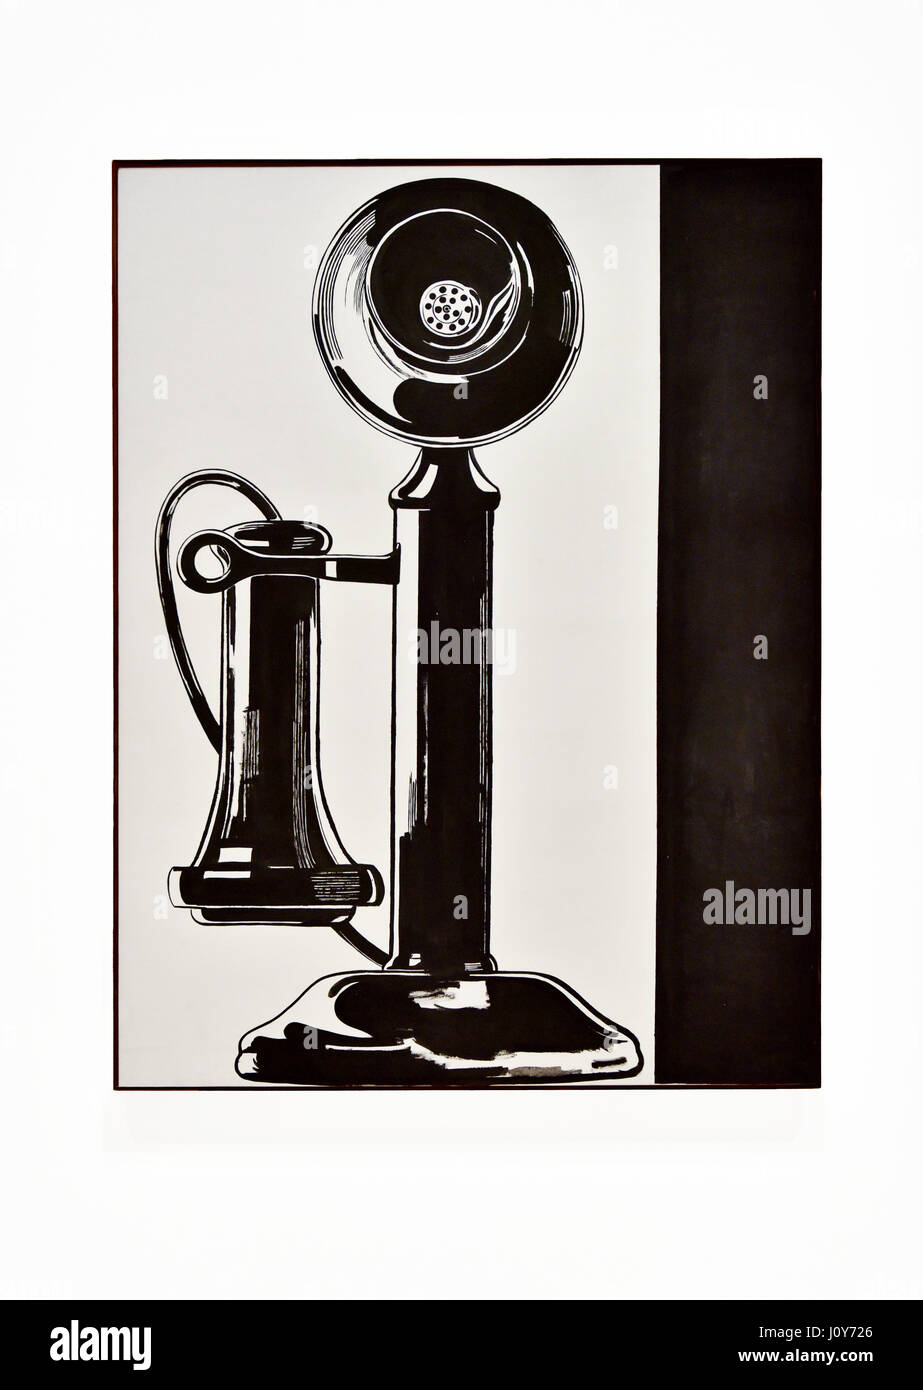 Art Of Movement Stock Photos Images Alamy Andy Warhol Dance Diagram 1961 Telephone On Display In The Moca Gallery Los Angeles